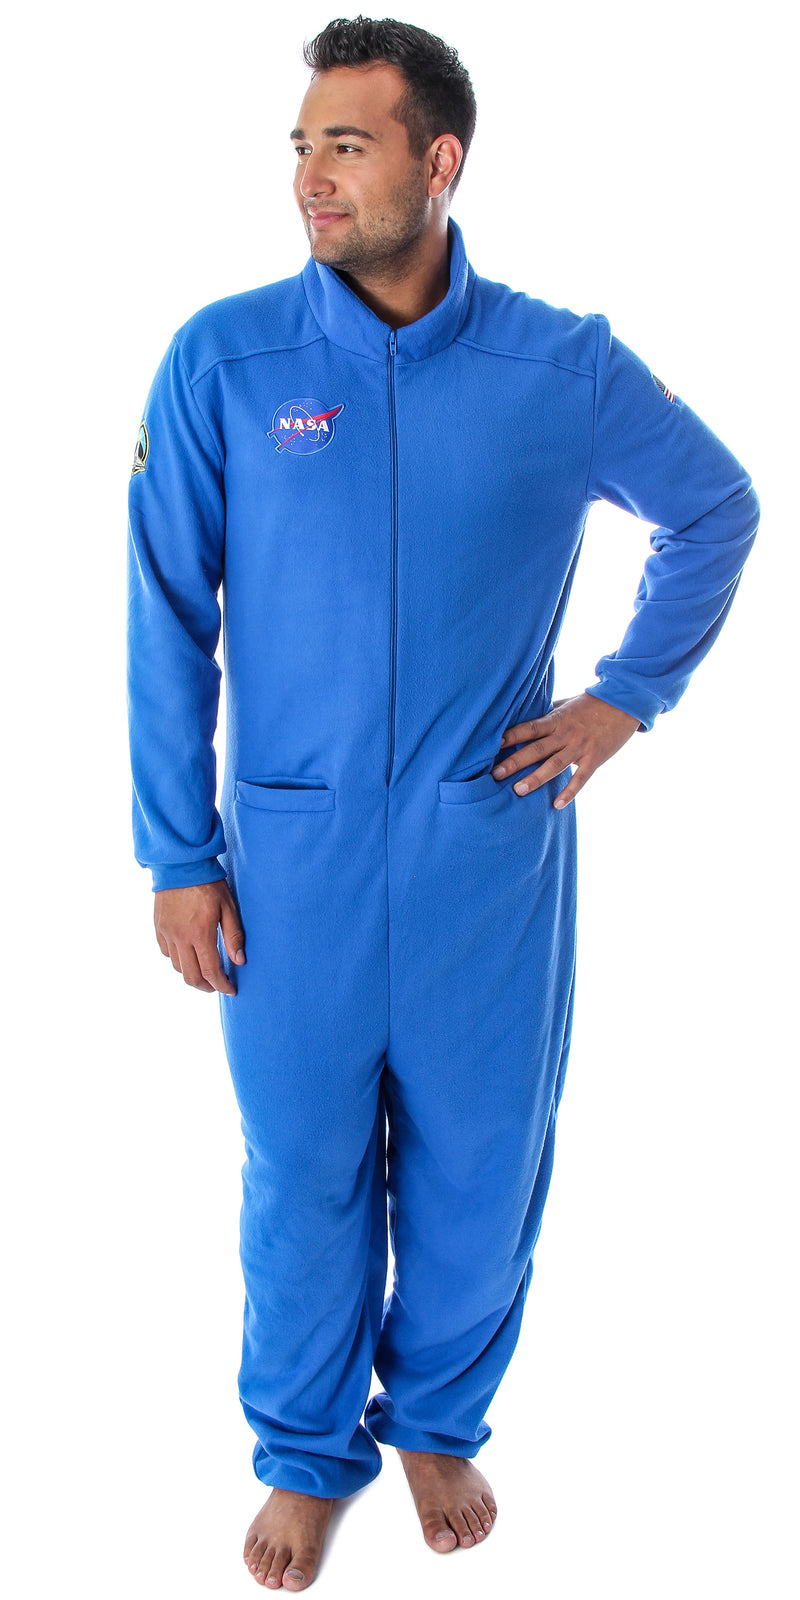 NASA Men's Meatball Logo Space Shuttle Astronaut Costume Patch One Piece Fleece Pajama Union Suit